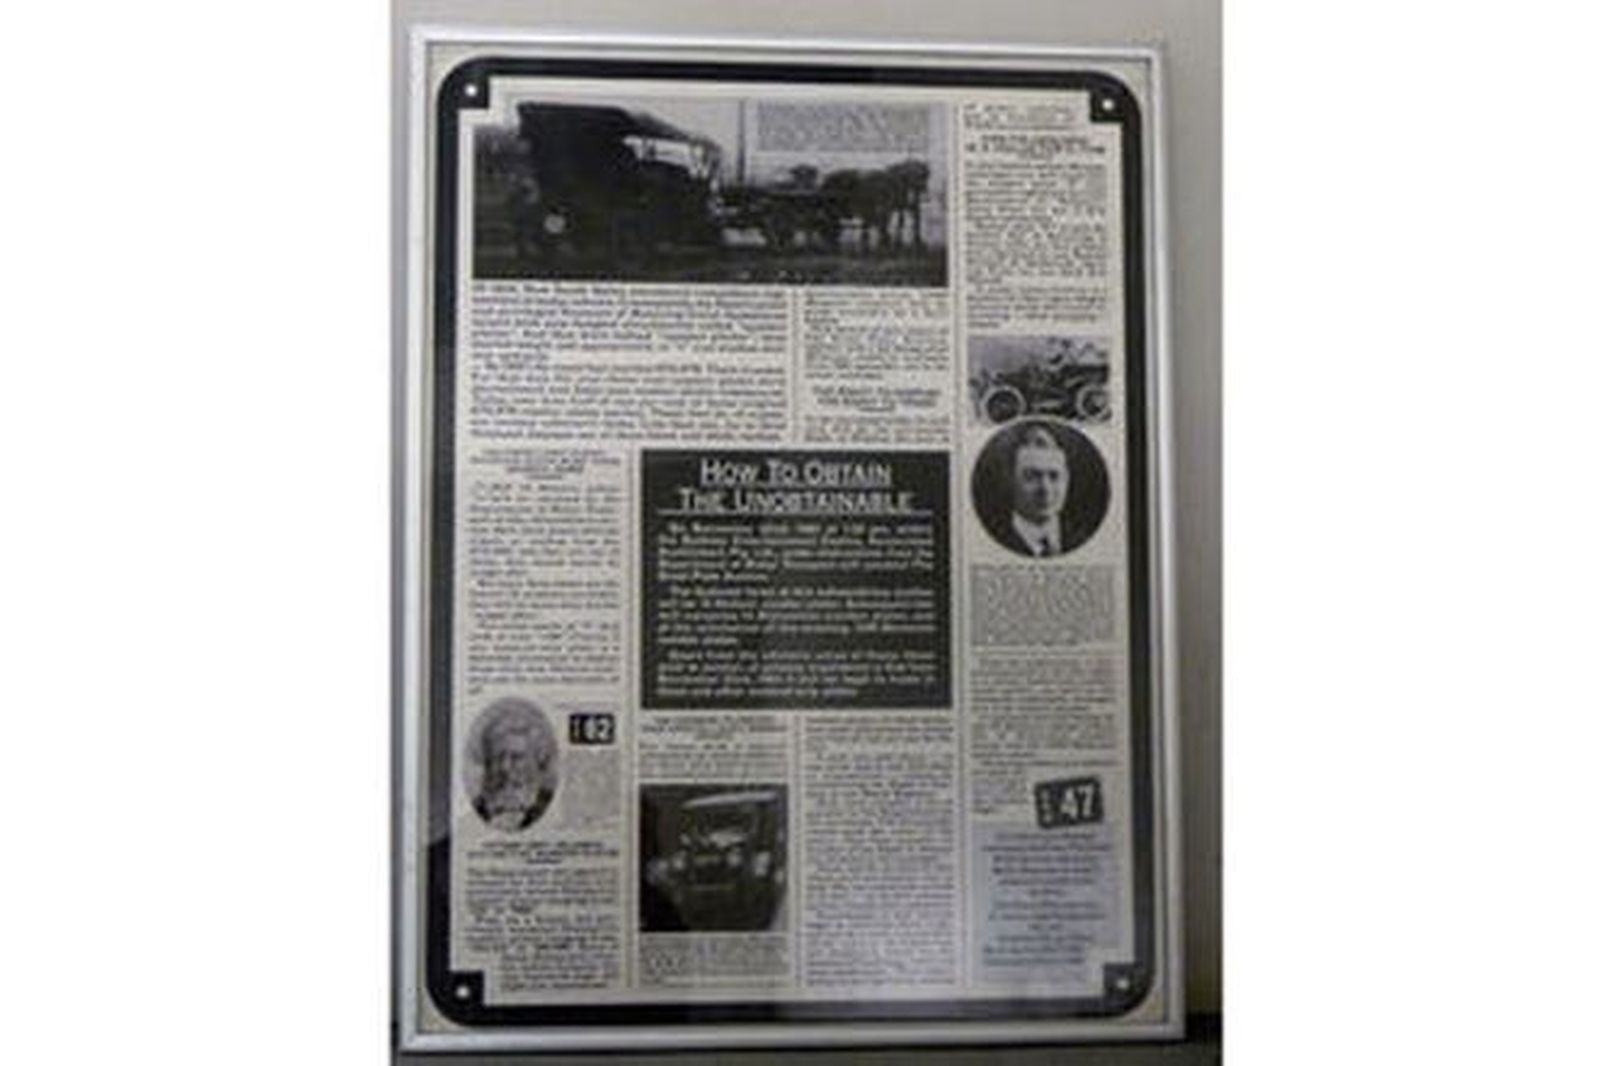 Framed Posters - Two Framed Posters of 1983 Number Plate Auction (78cm x 59cm)